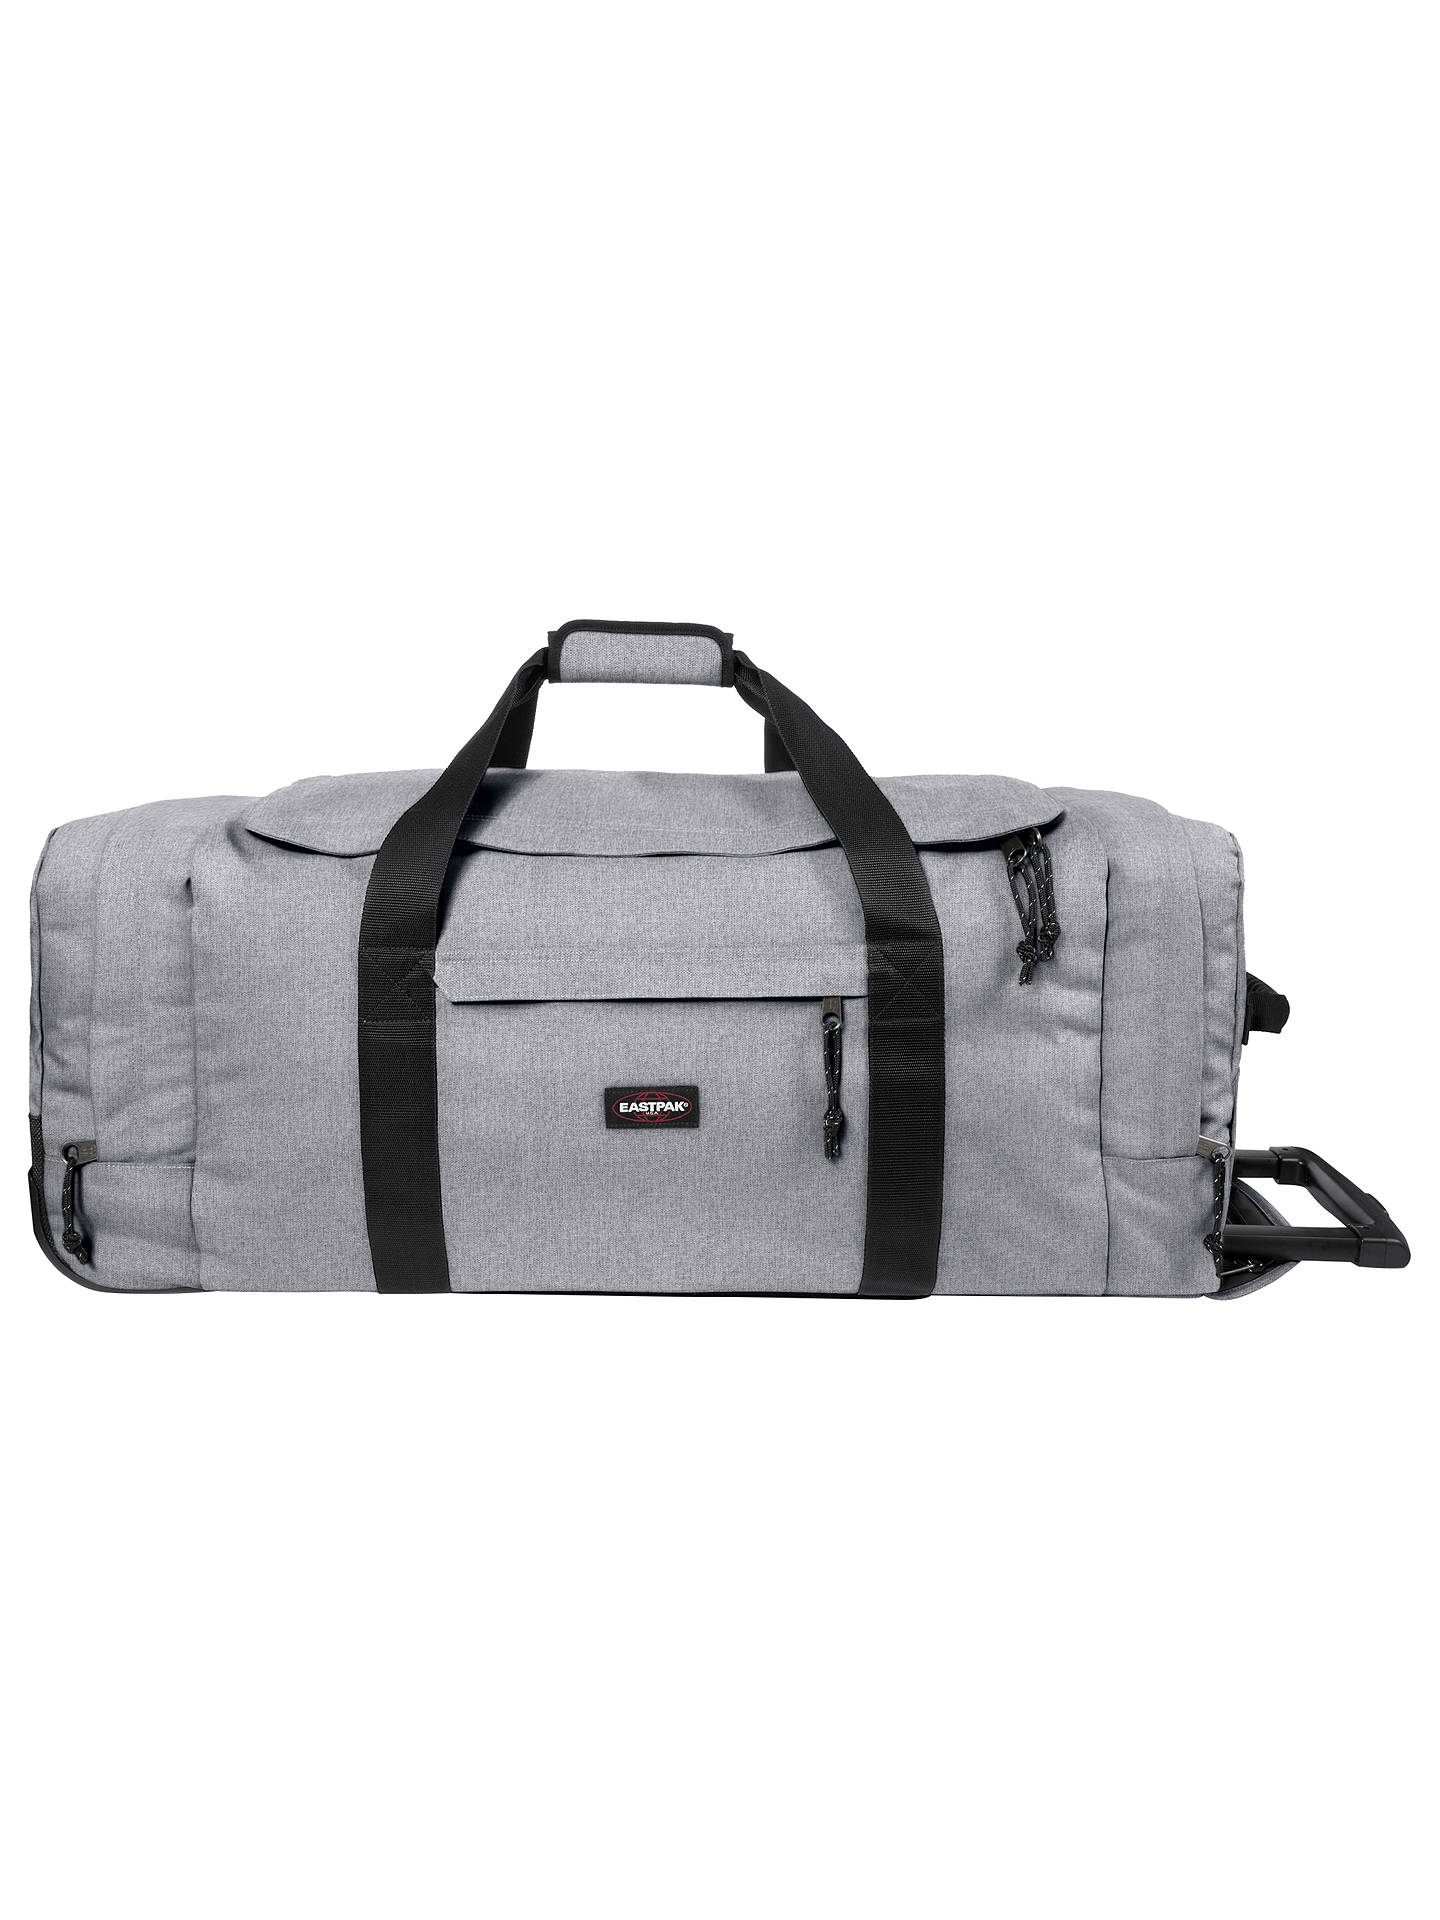 4c7e36c5cd Buy Eastpak Leatherface Large 2-Wheel Duffle Bag